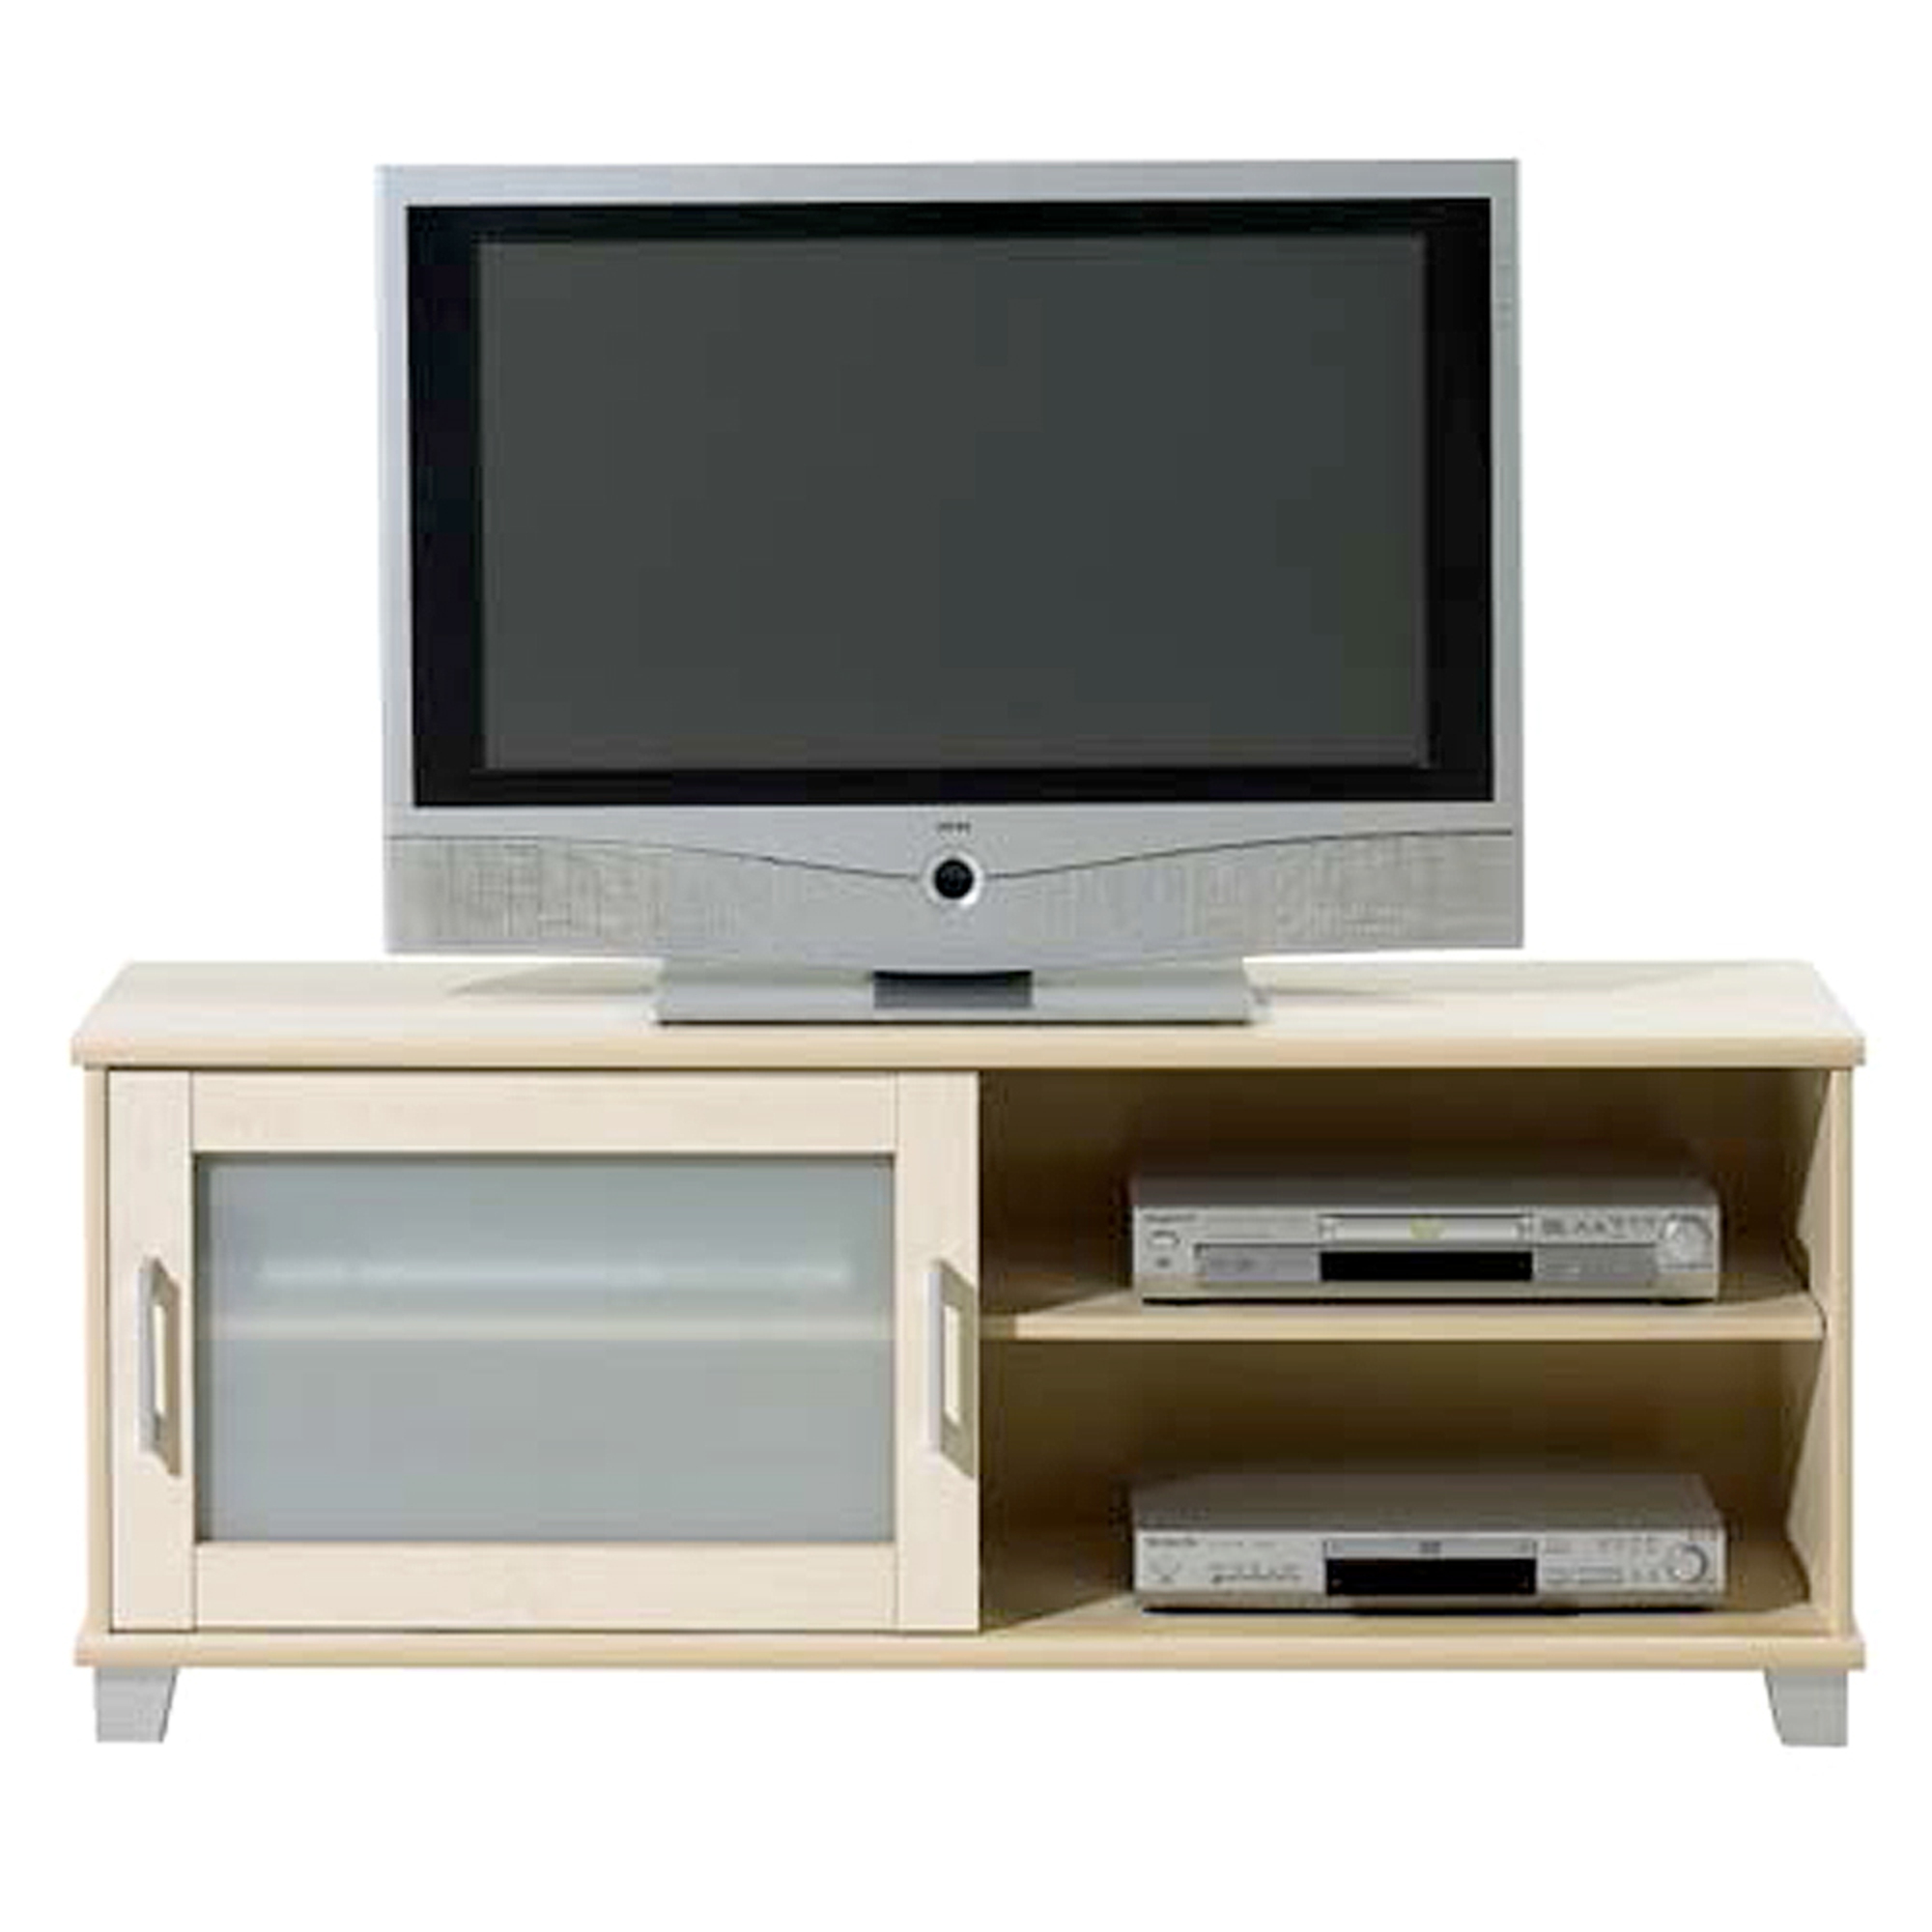 soldes meubles la maison de valerie soldes meuble tv kkz ventes pas. Black Bedroom Furniture Sets. Home Design Ideas